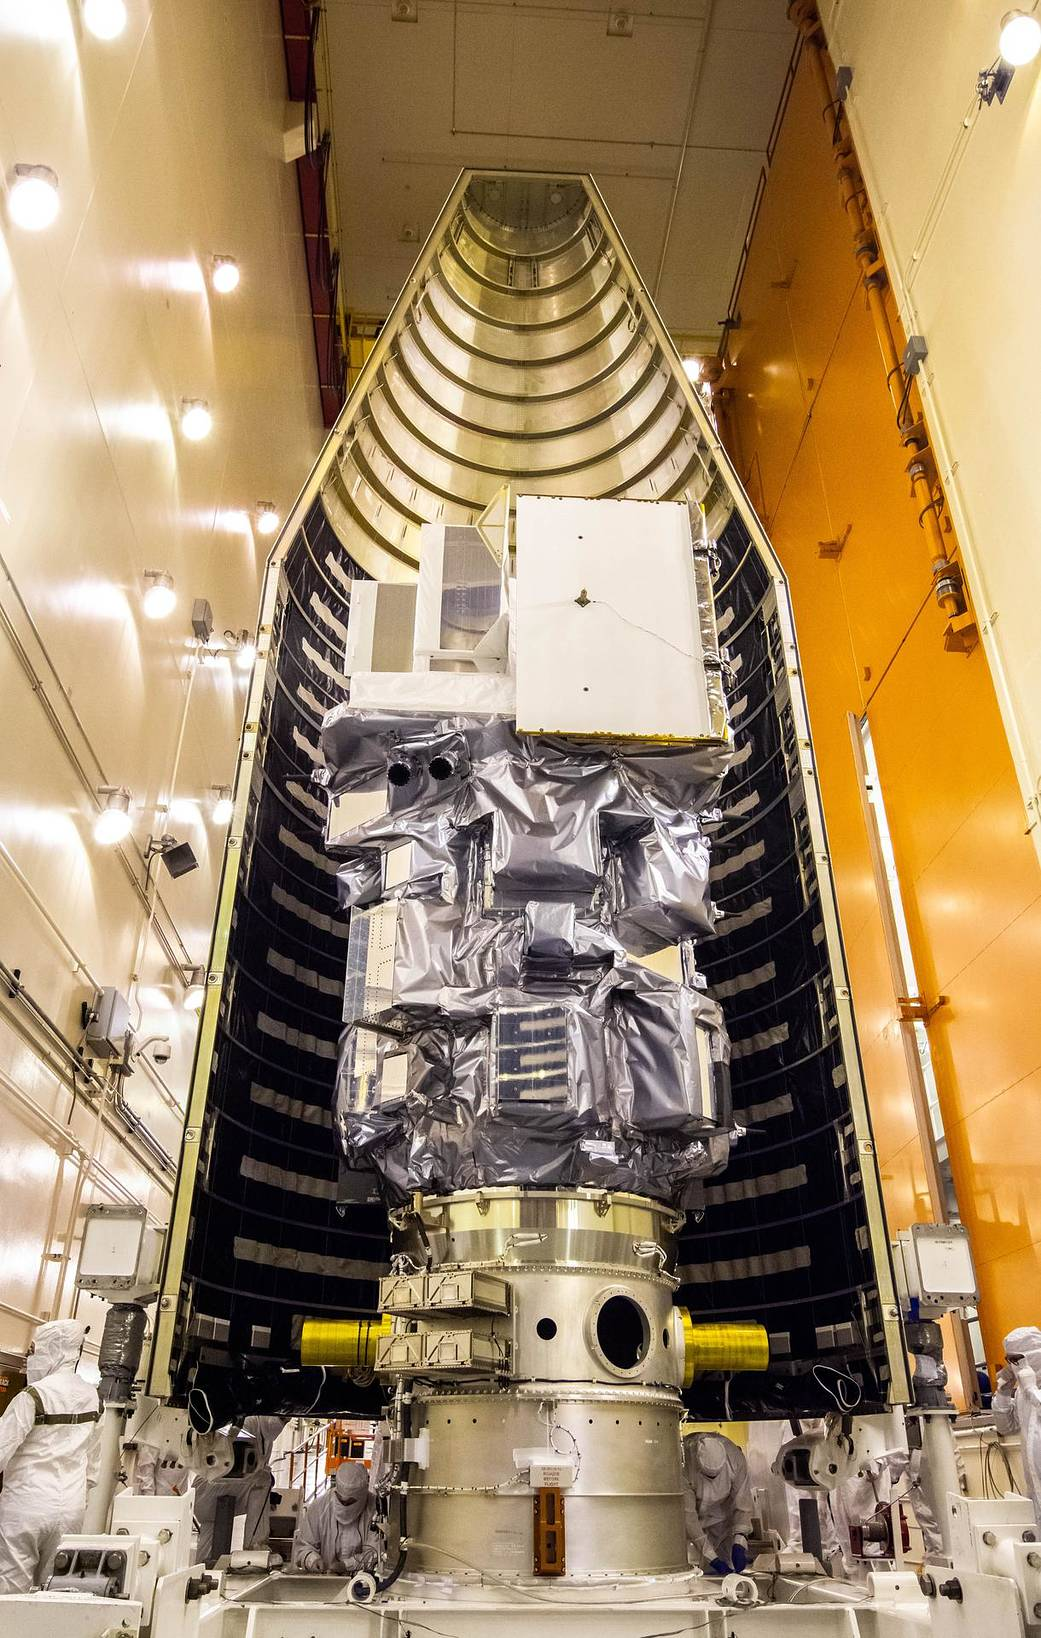 Inside the Integrated Processing Facility at Vandenberg Space Force Base in California, the Landsat 9 spacecraft is moved into position for encapsulation on Aug. 16, 2021.